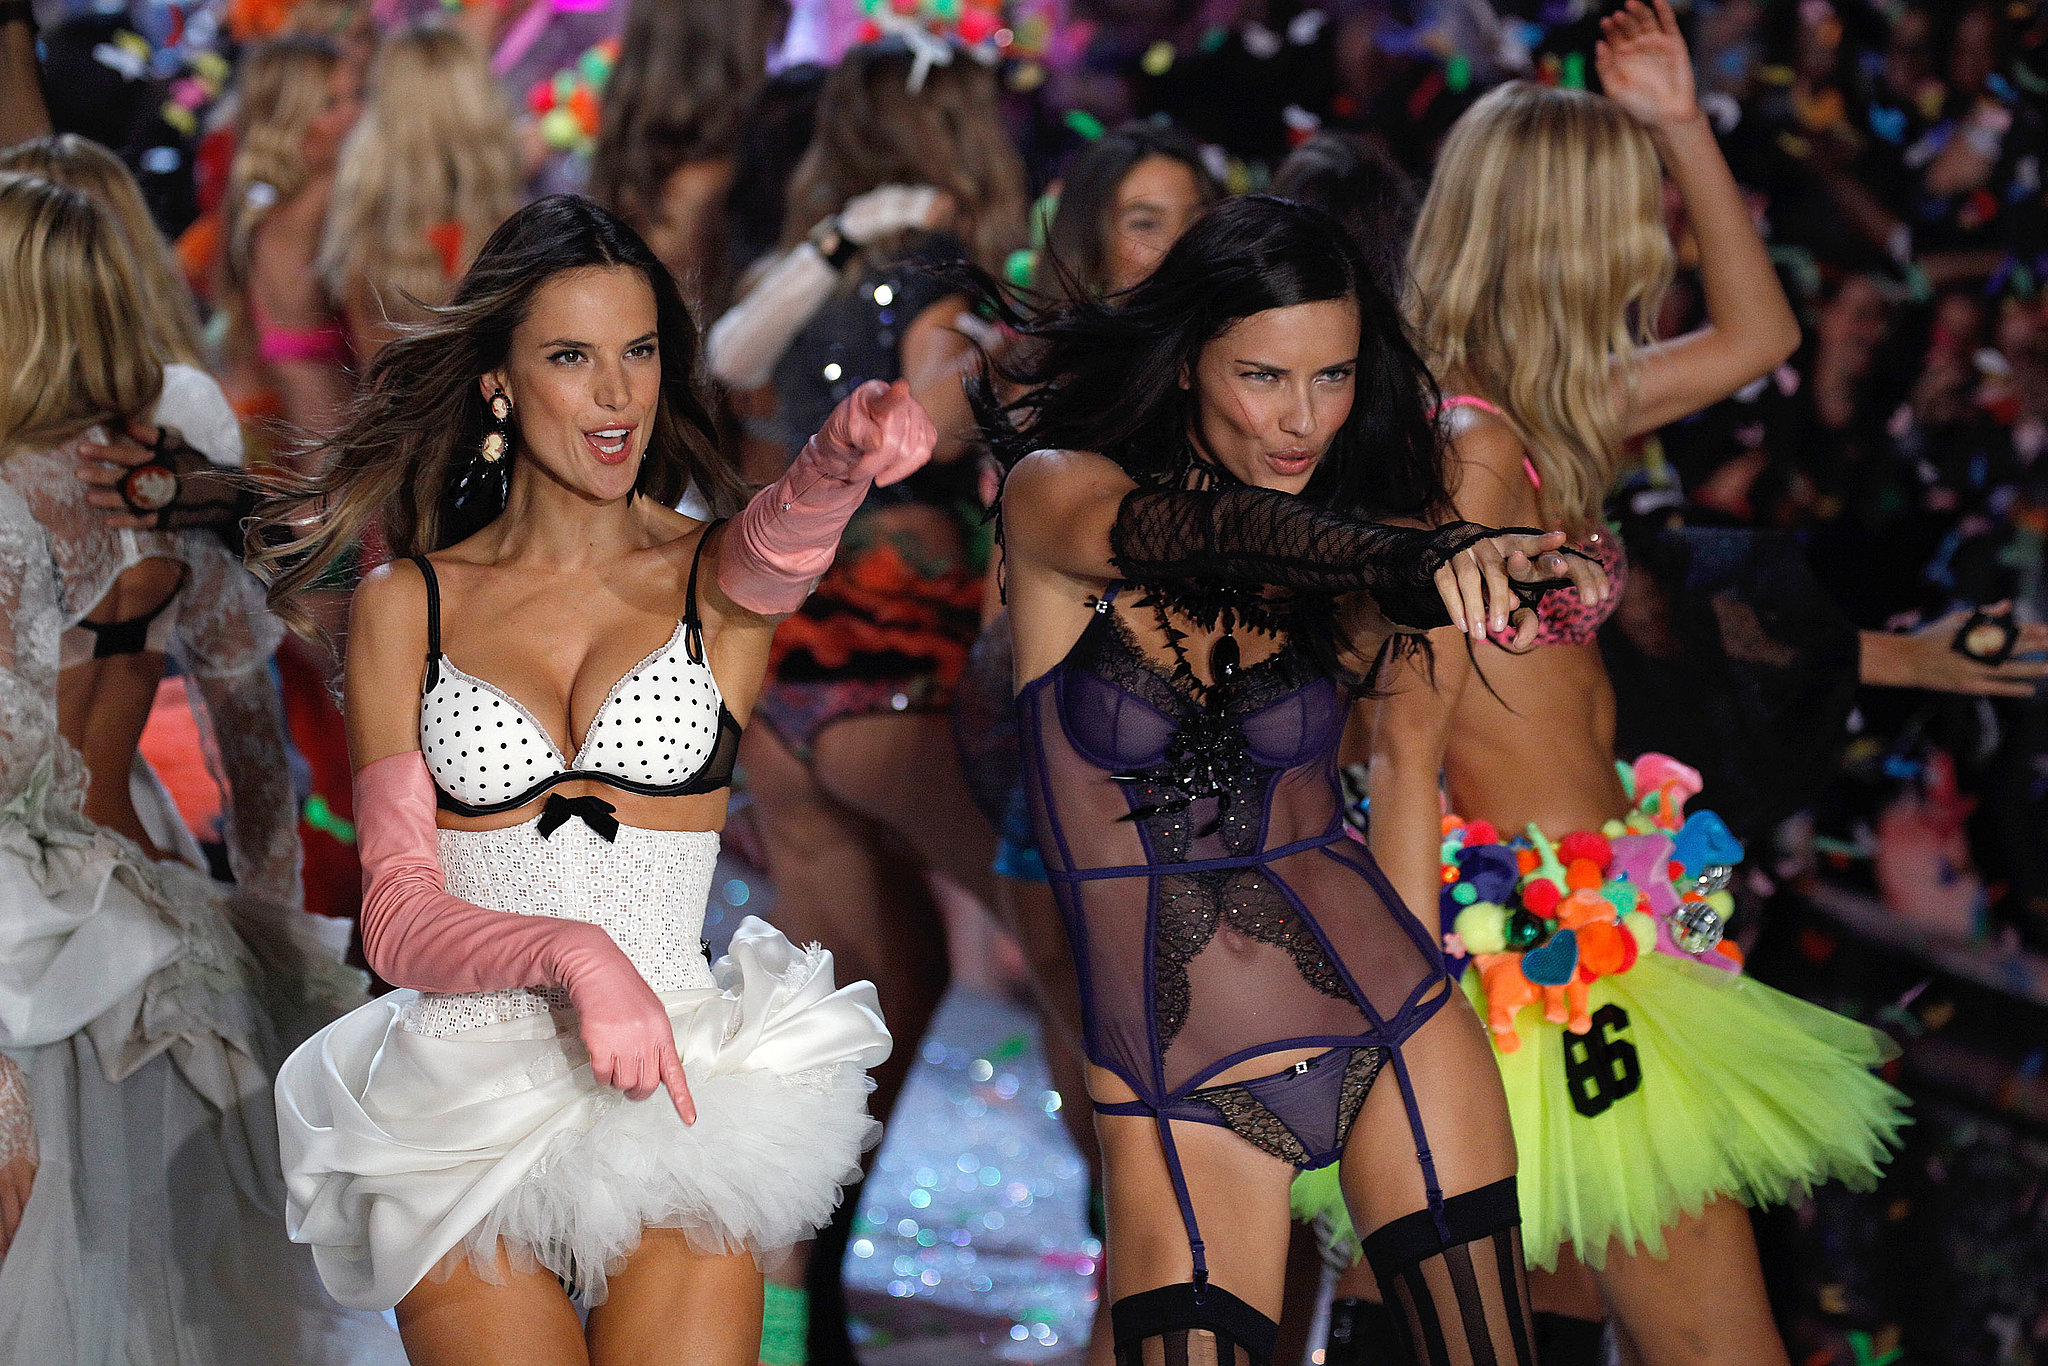 Alessandra Ambrosio and Adriana Lima celebrated the 2011 show.